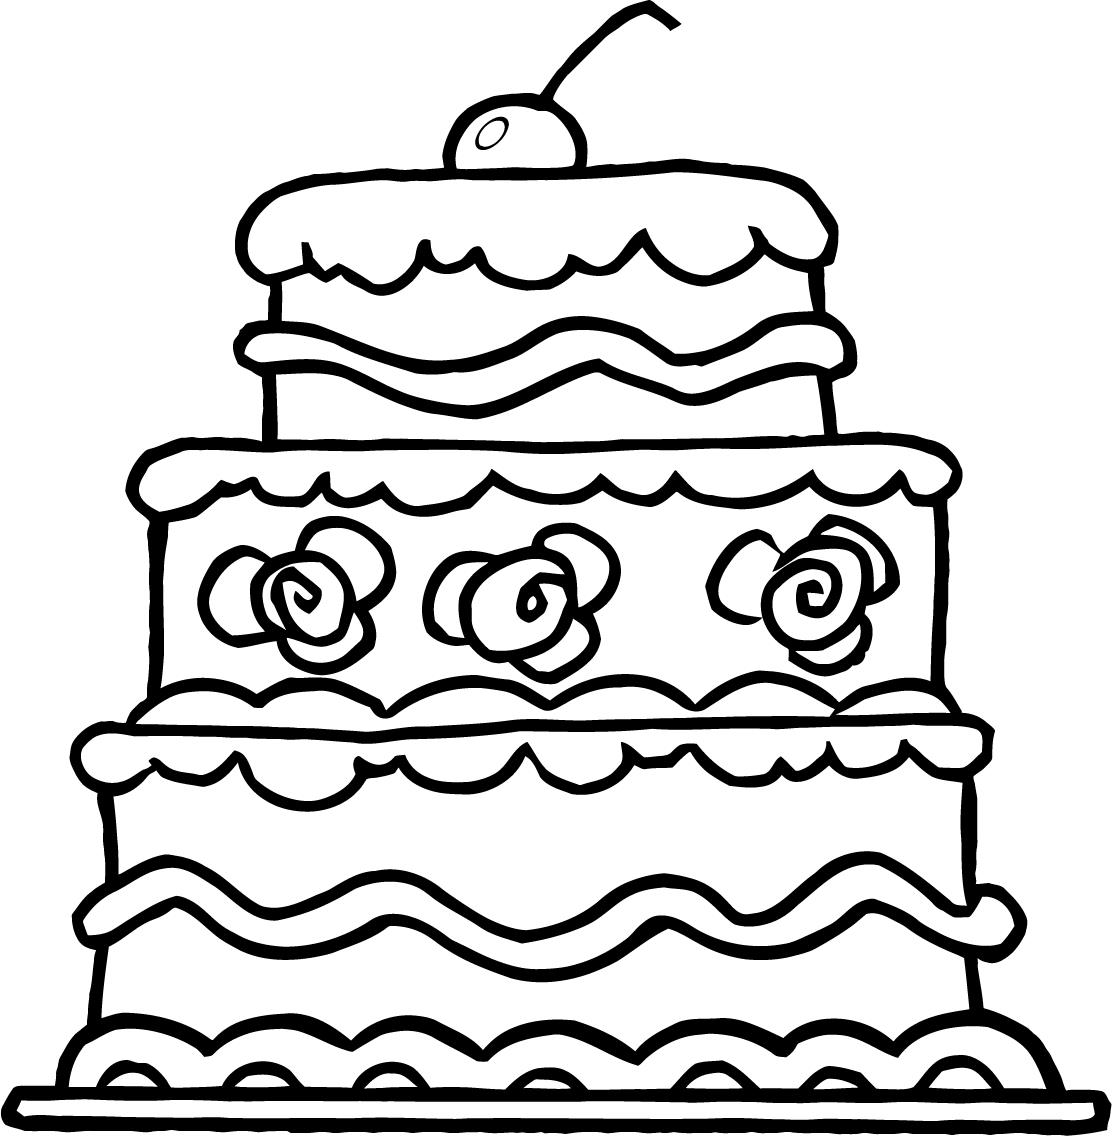 Cake coloring pages to download